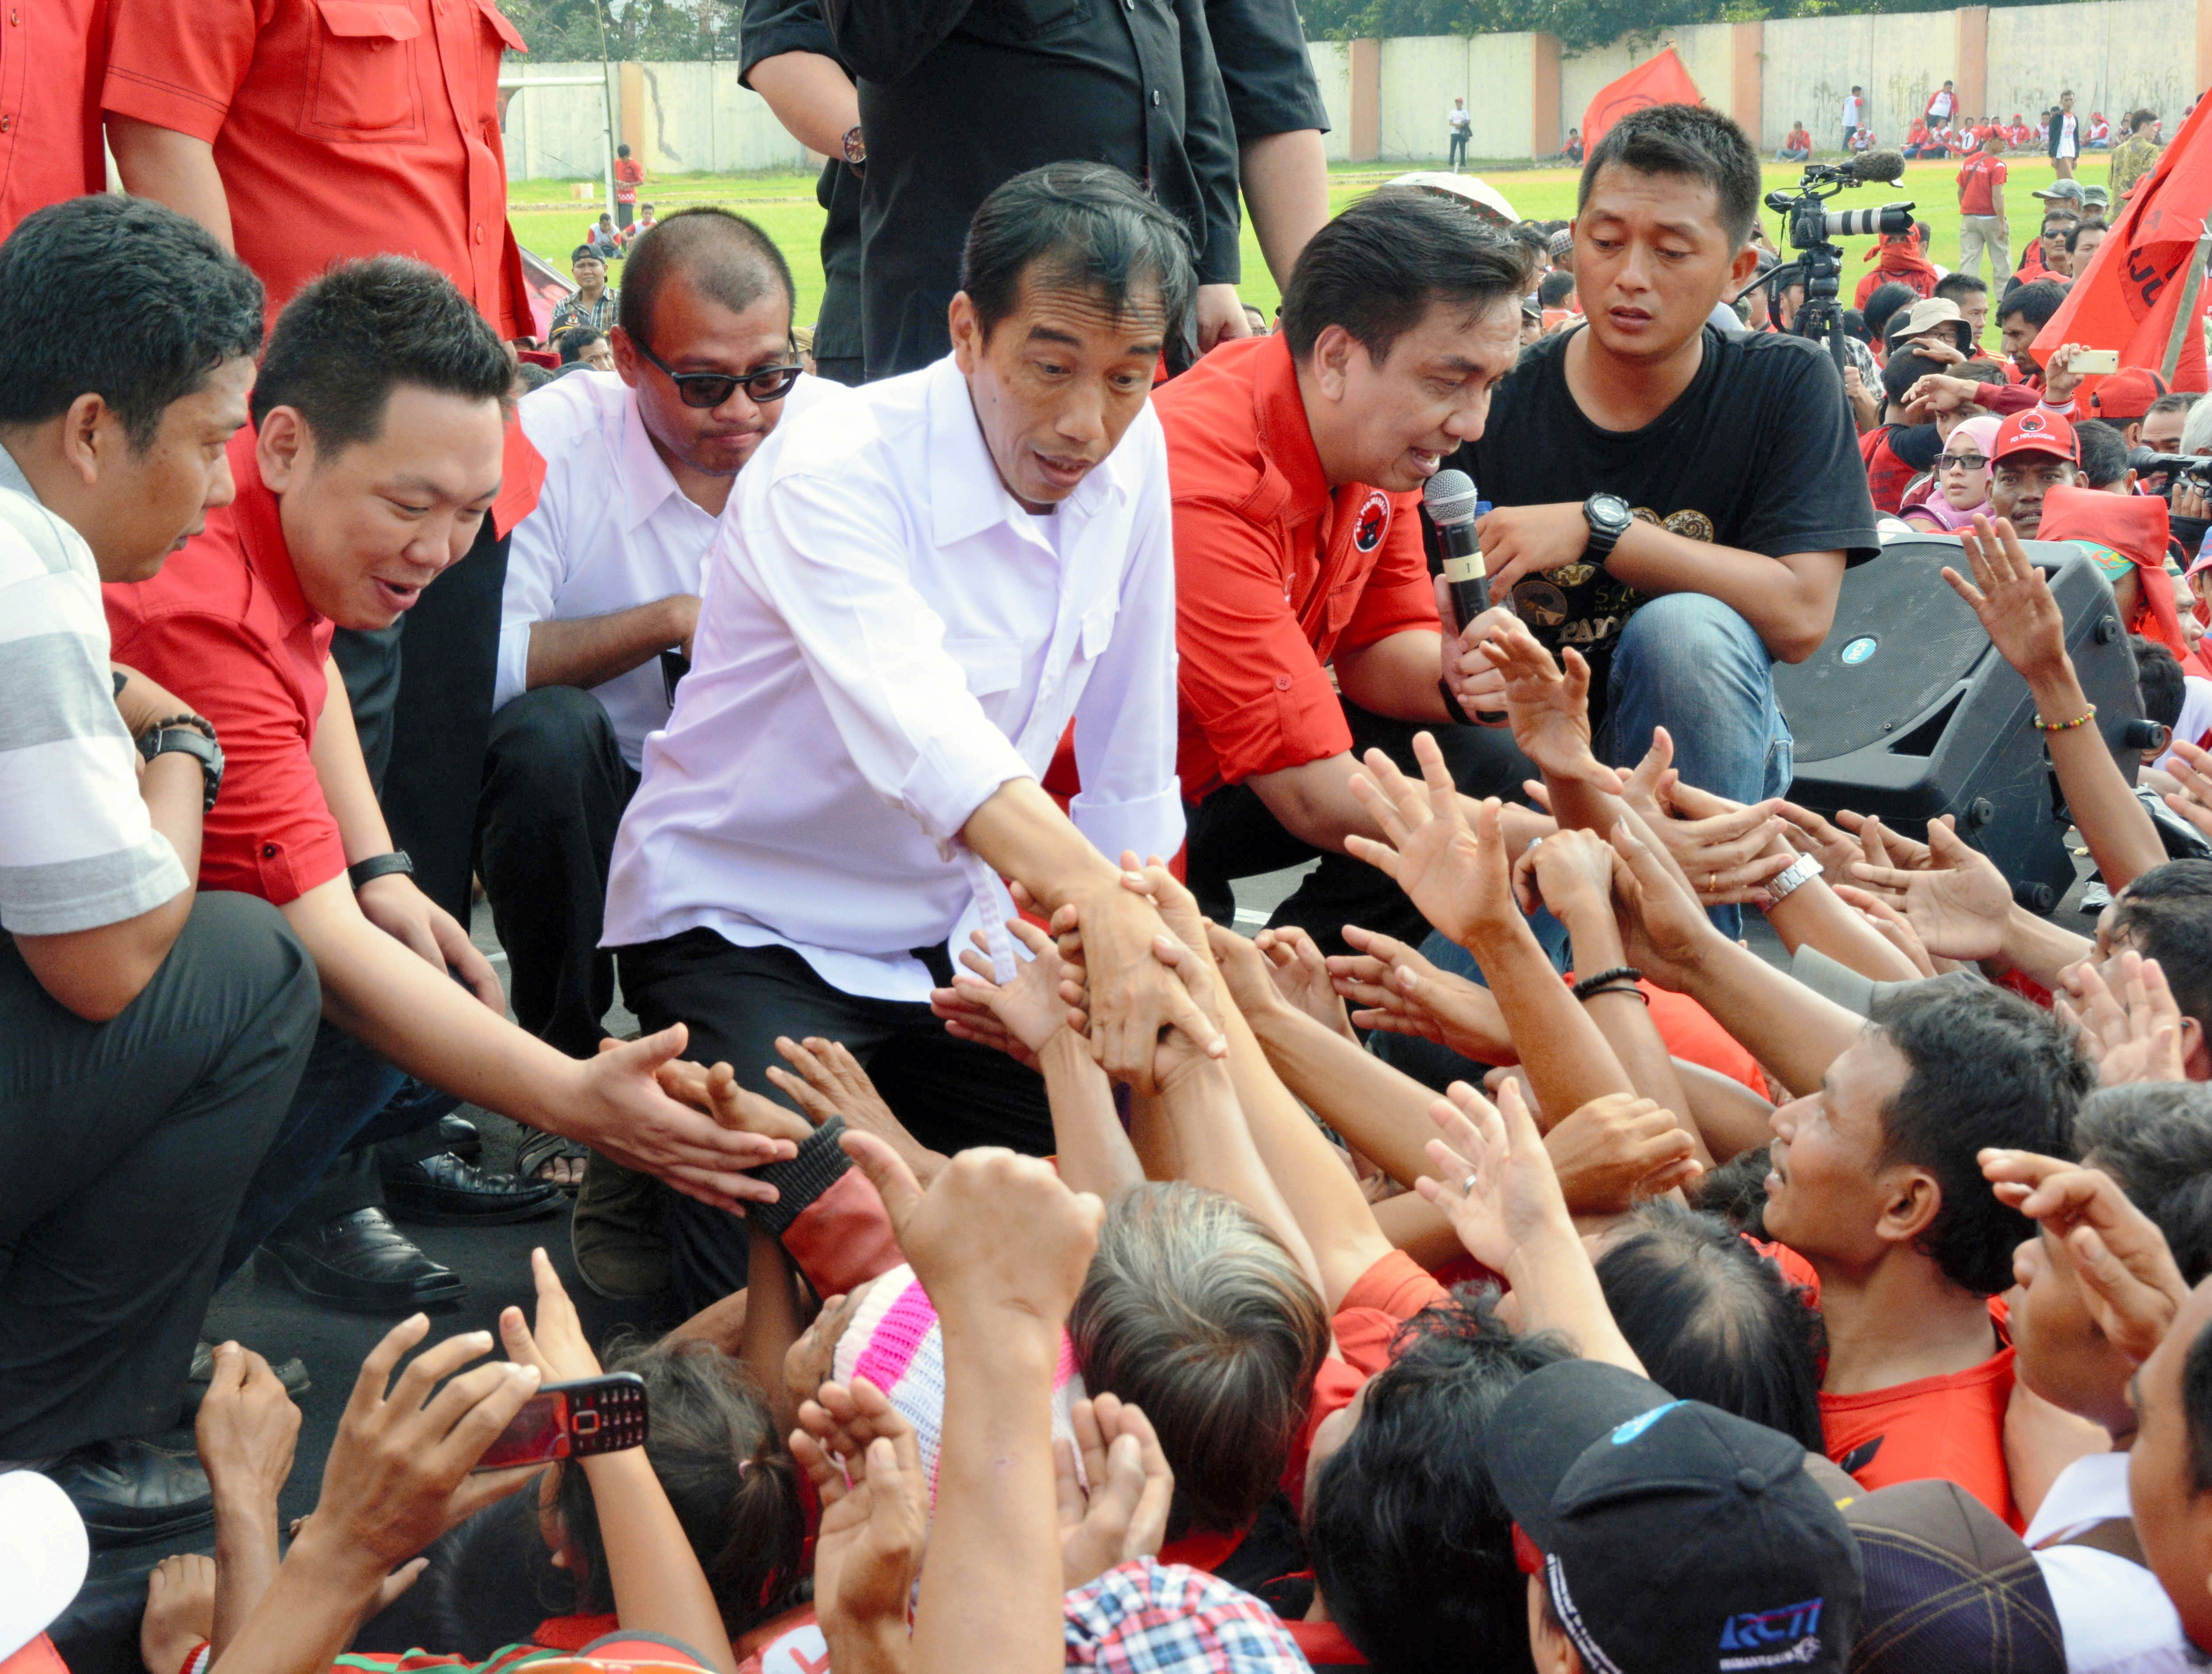 Indonesian presidential candidate and Jakarta Governor Joko Widodo, center, shakes hands with his supporters after making a speech in Jakarta as the election campaign kicks off on March 16, 2014